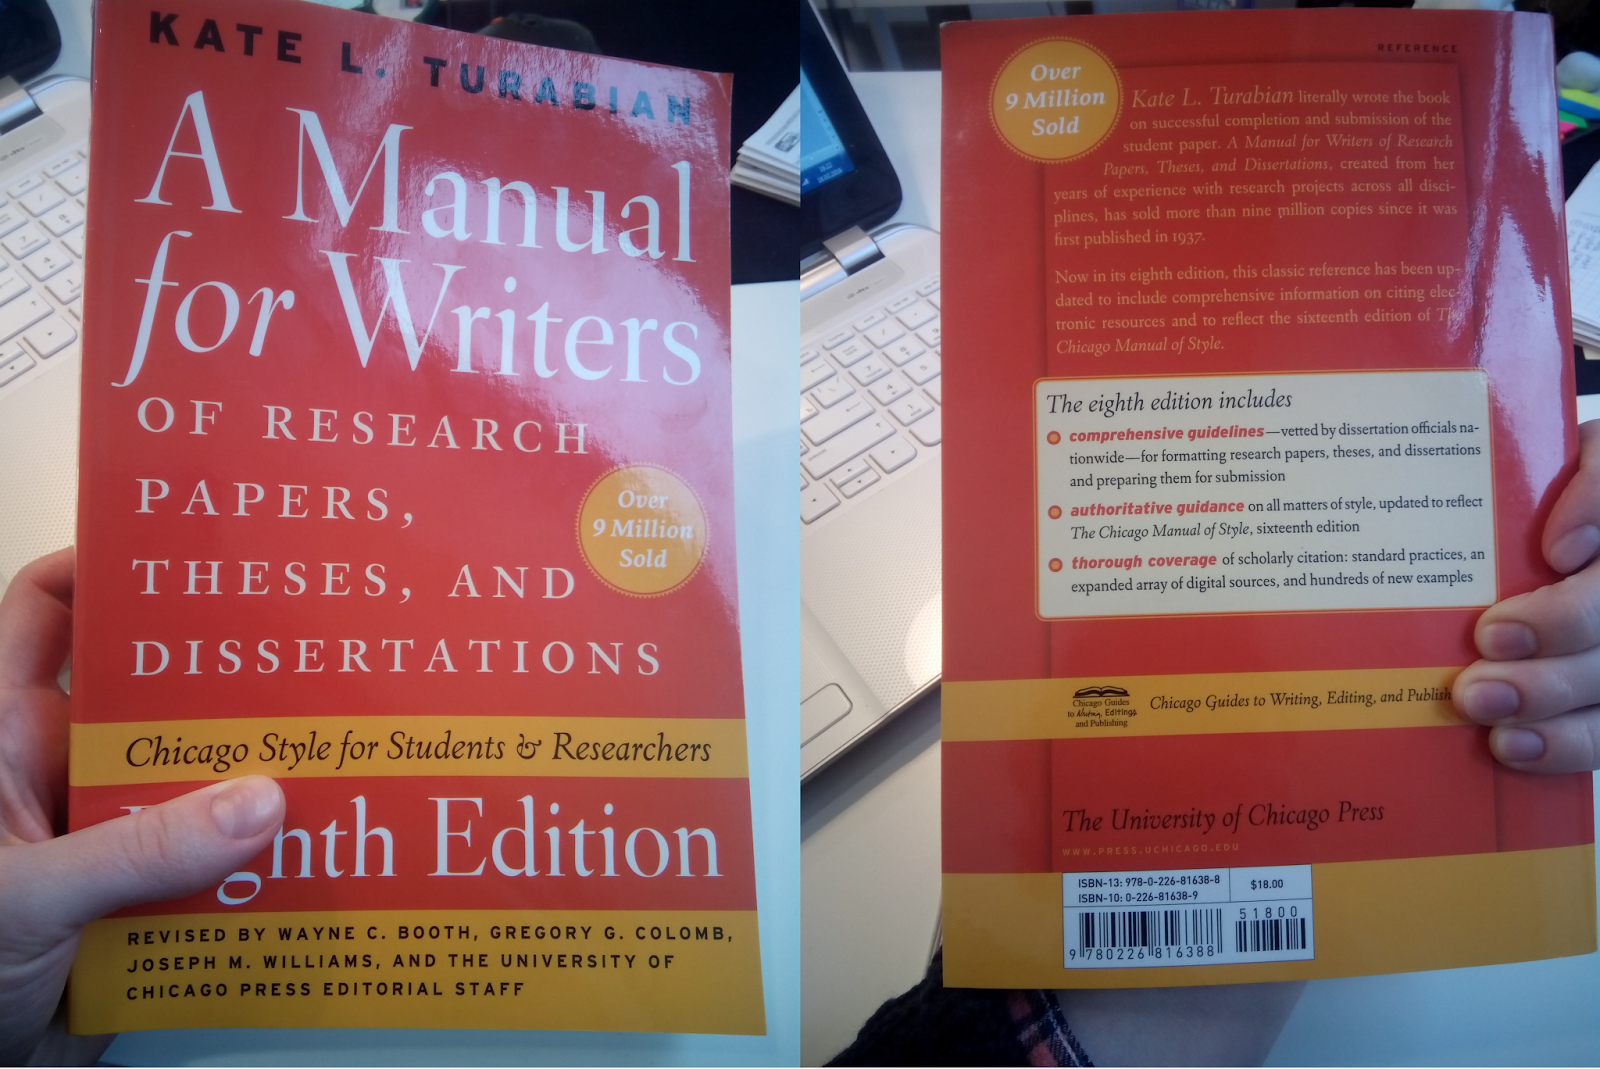 019 Manual For Writers Of Research Papers Theses And Dissertations Paper Magnificent A Amazon 9th Edition Pdf 8th 13 Full